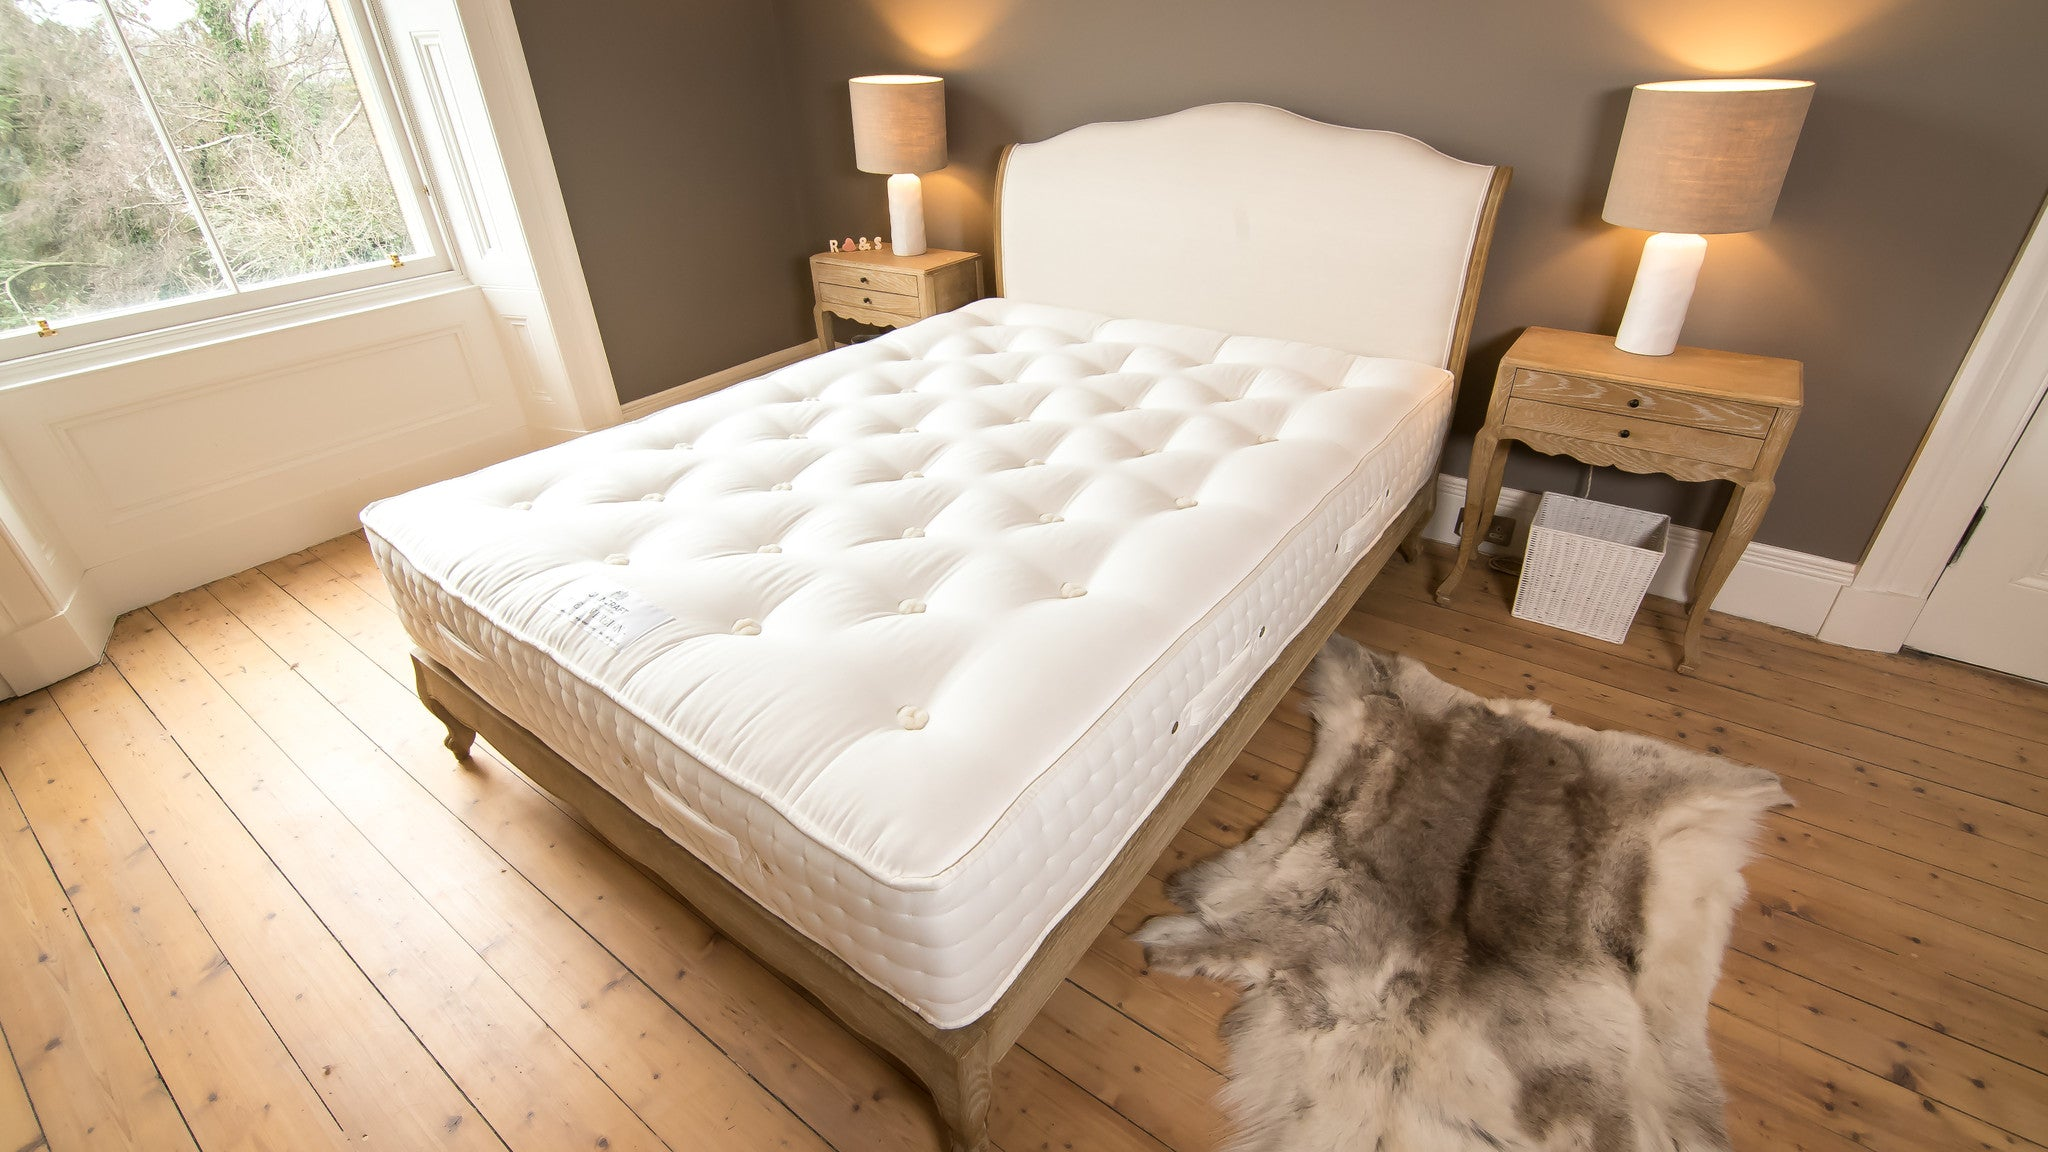 The Sovereign Mattress Luxury Hotel Mattress With Warm